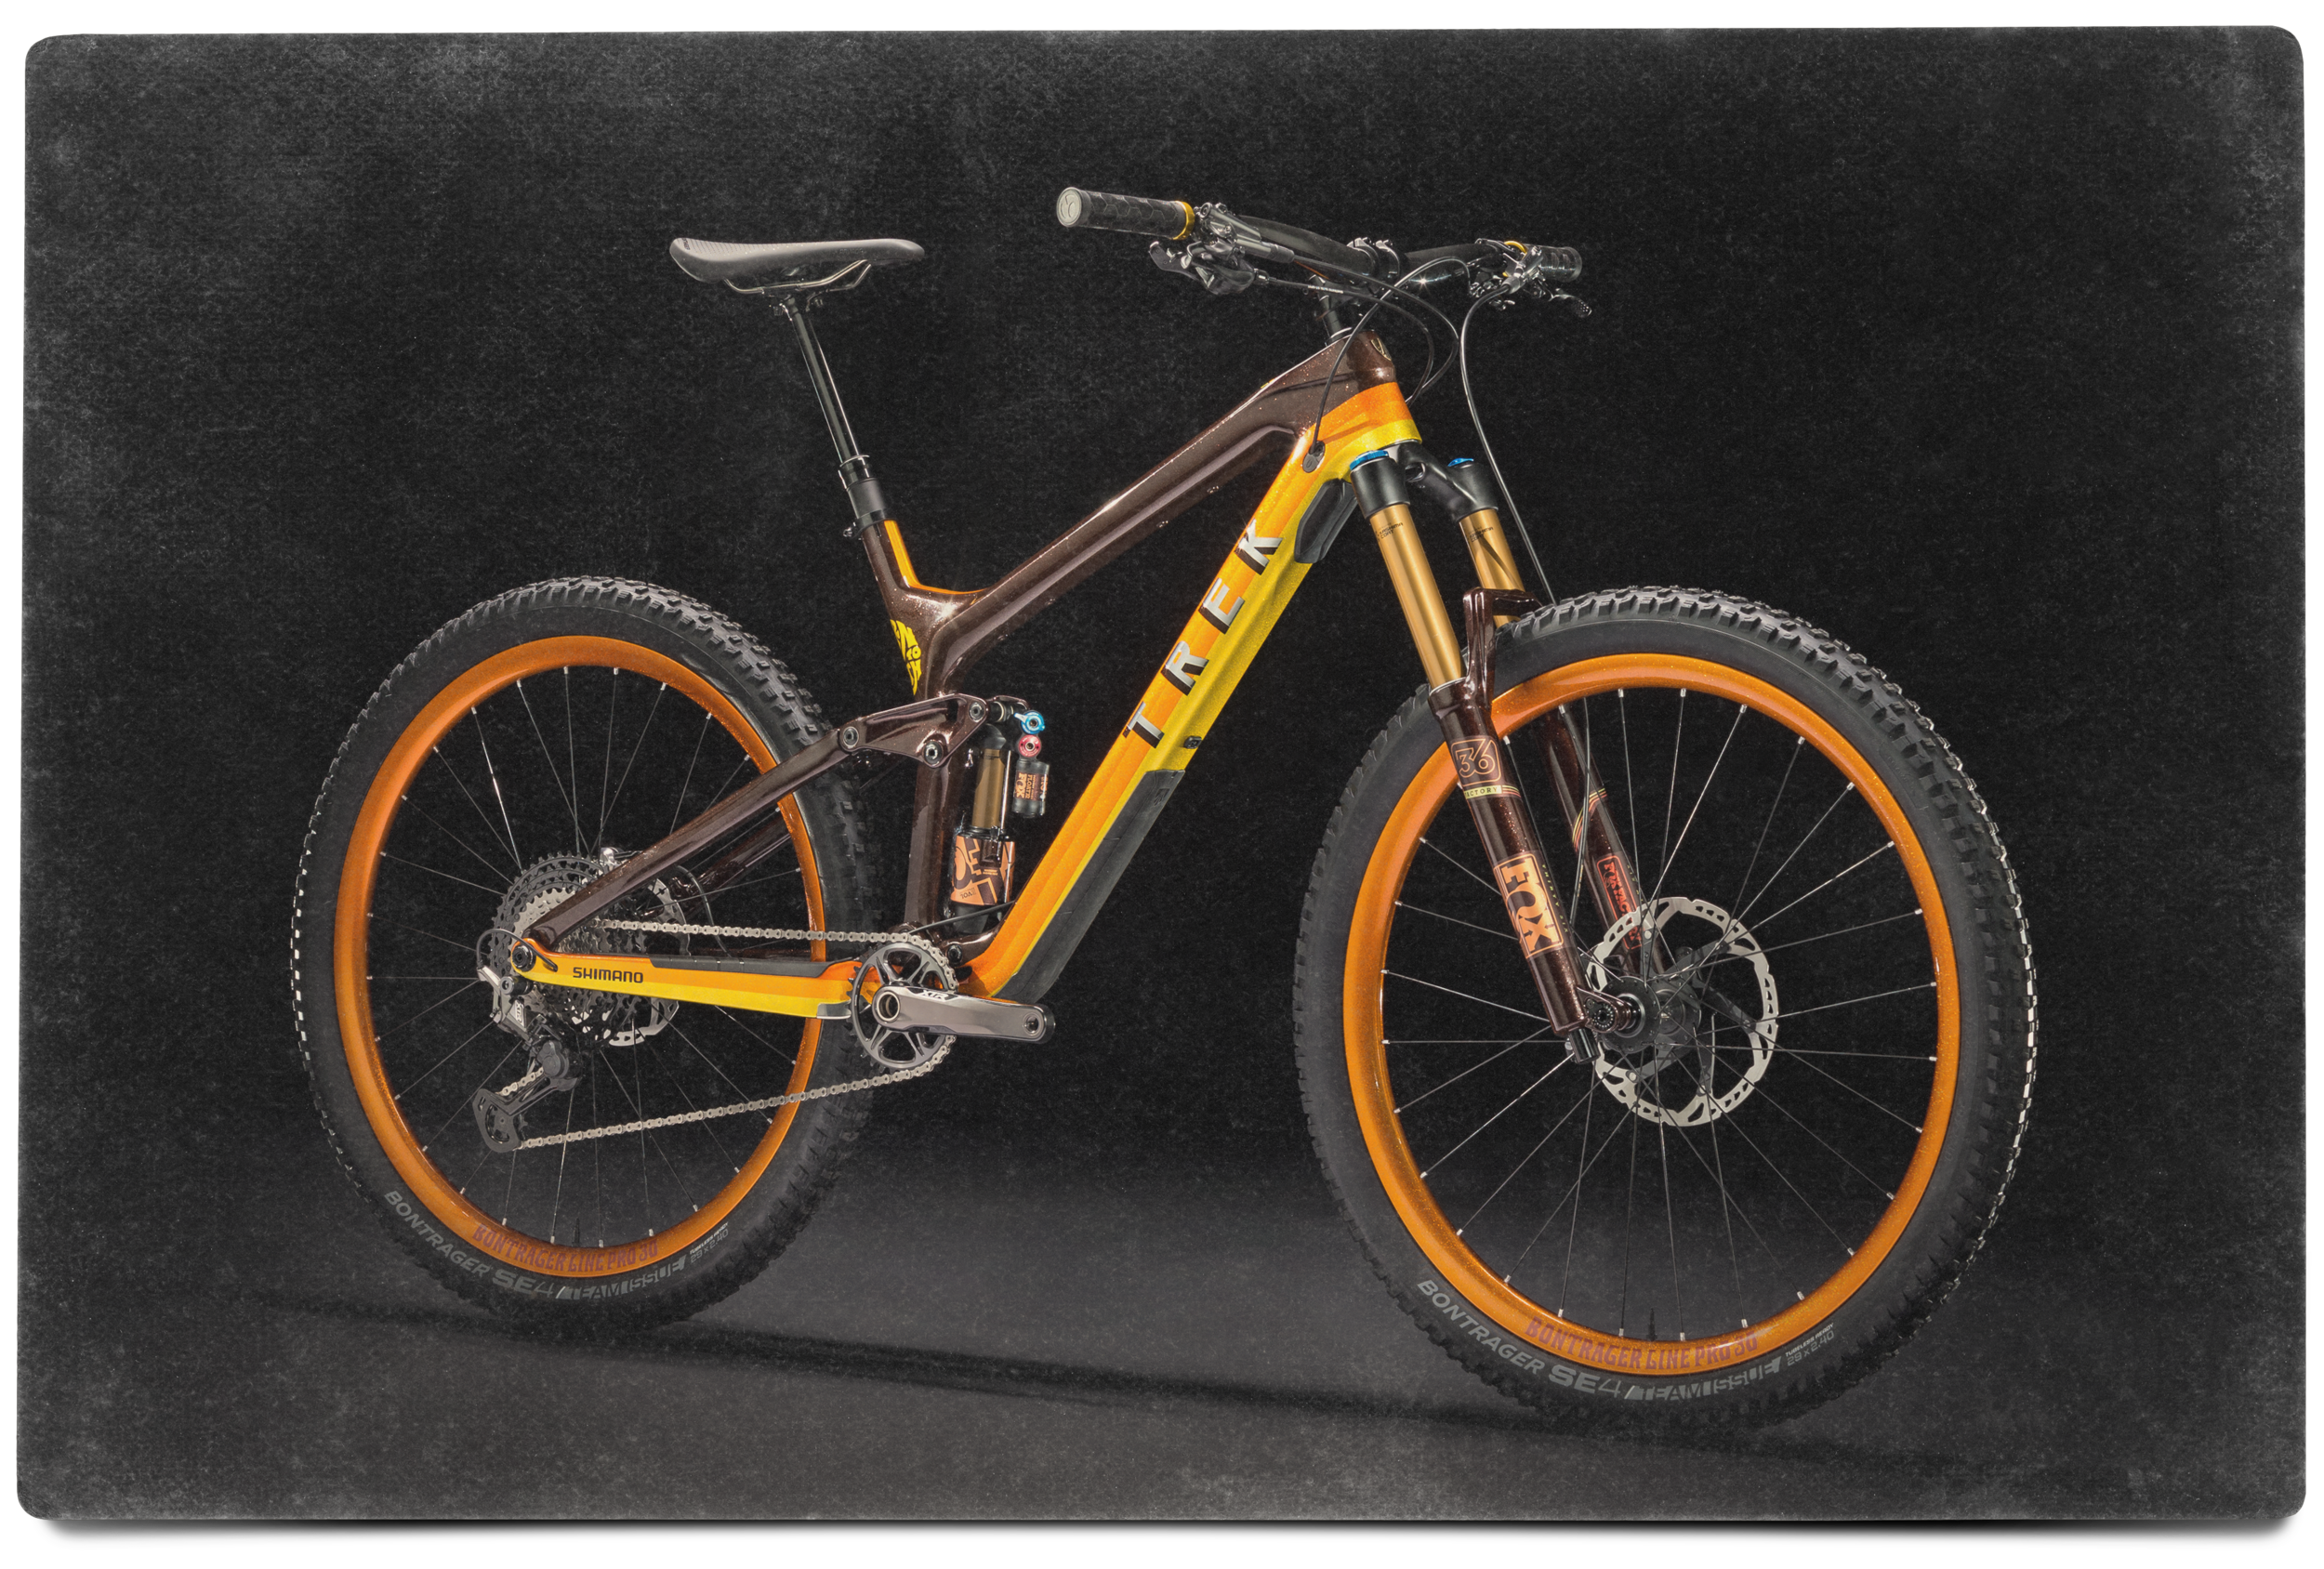 Behold the Return to Earth bicycle. Custom carbon Trek Slash with Shimano XTR drivetrain and brakes